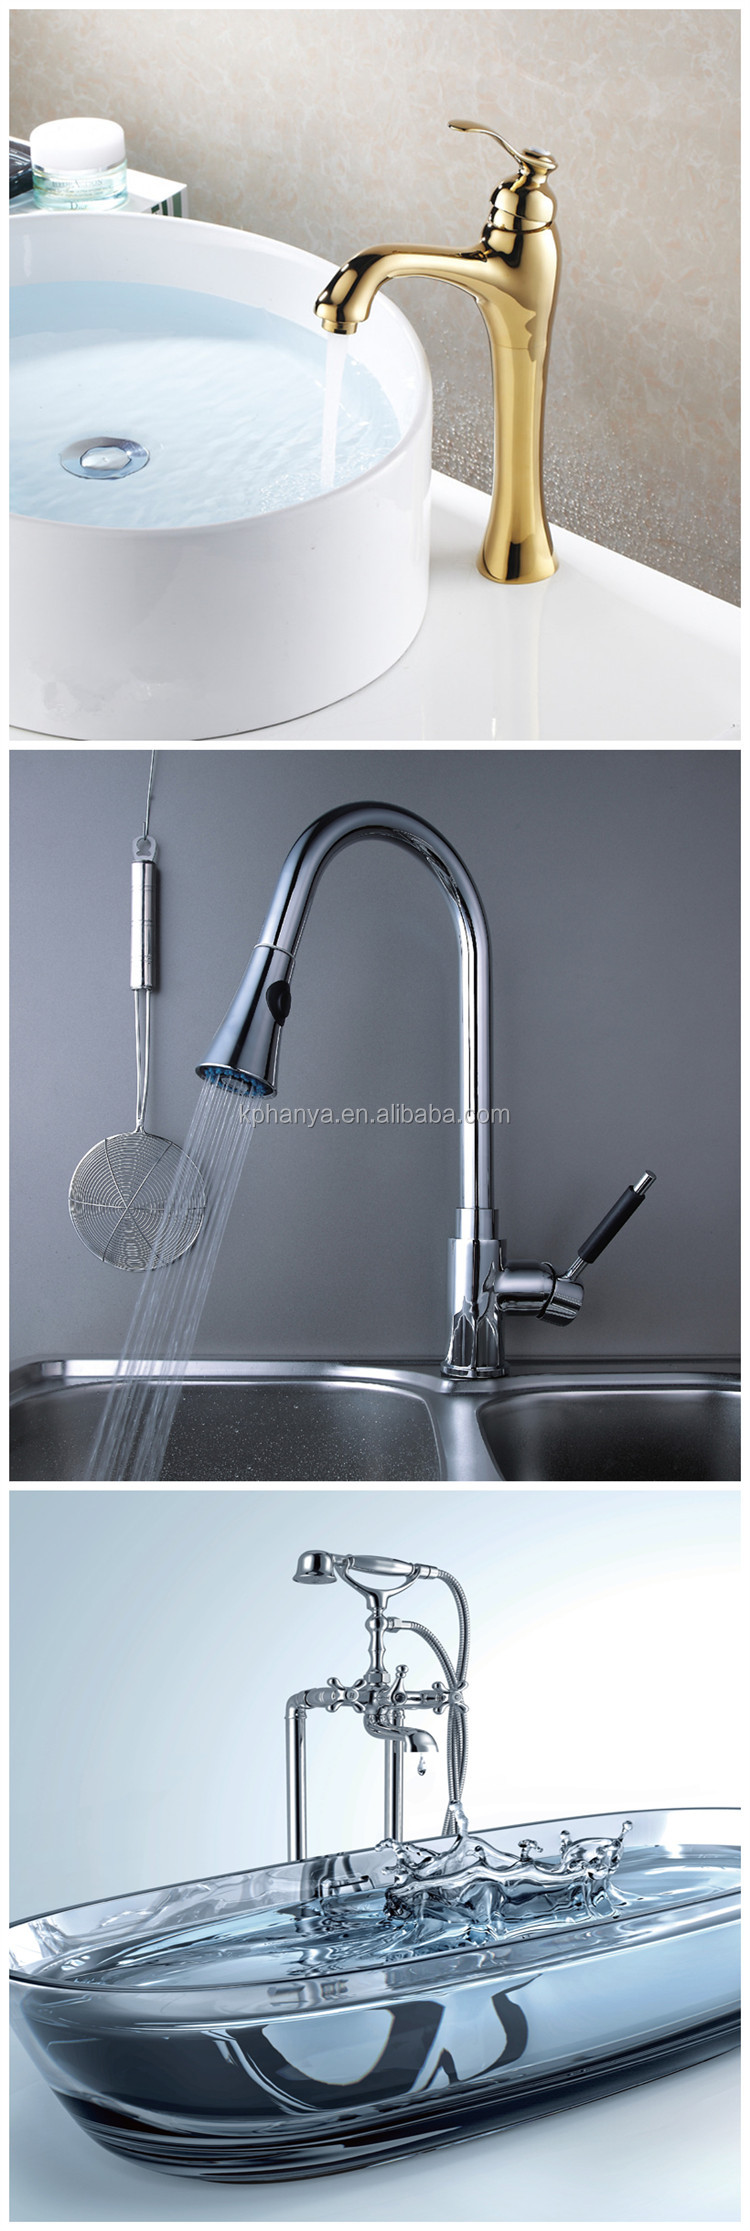 Europe Style hanya New Design Antique Kitchen Faucet